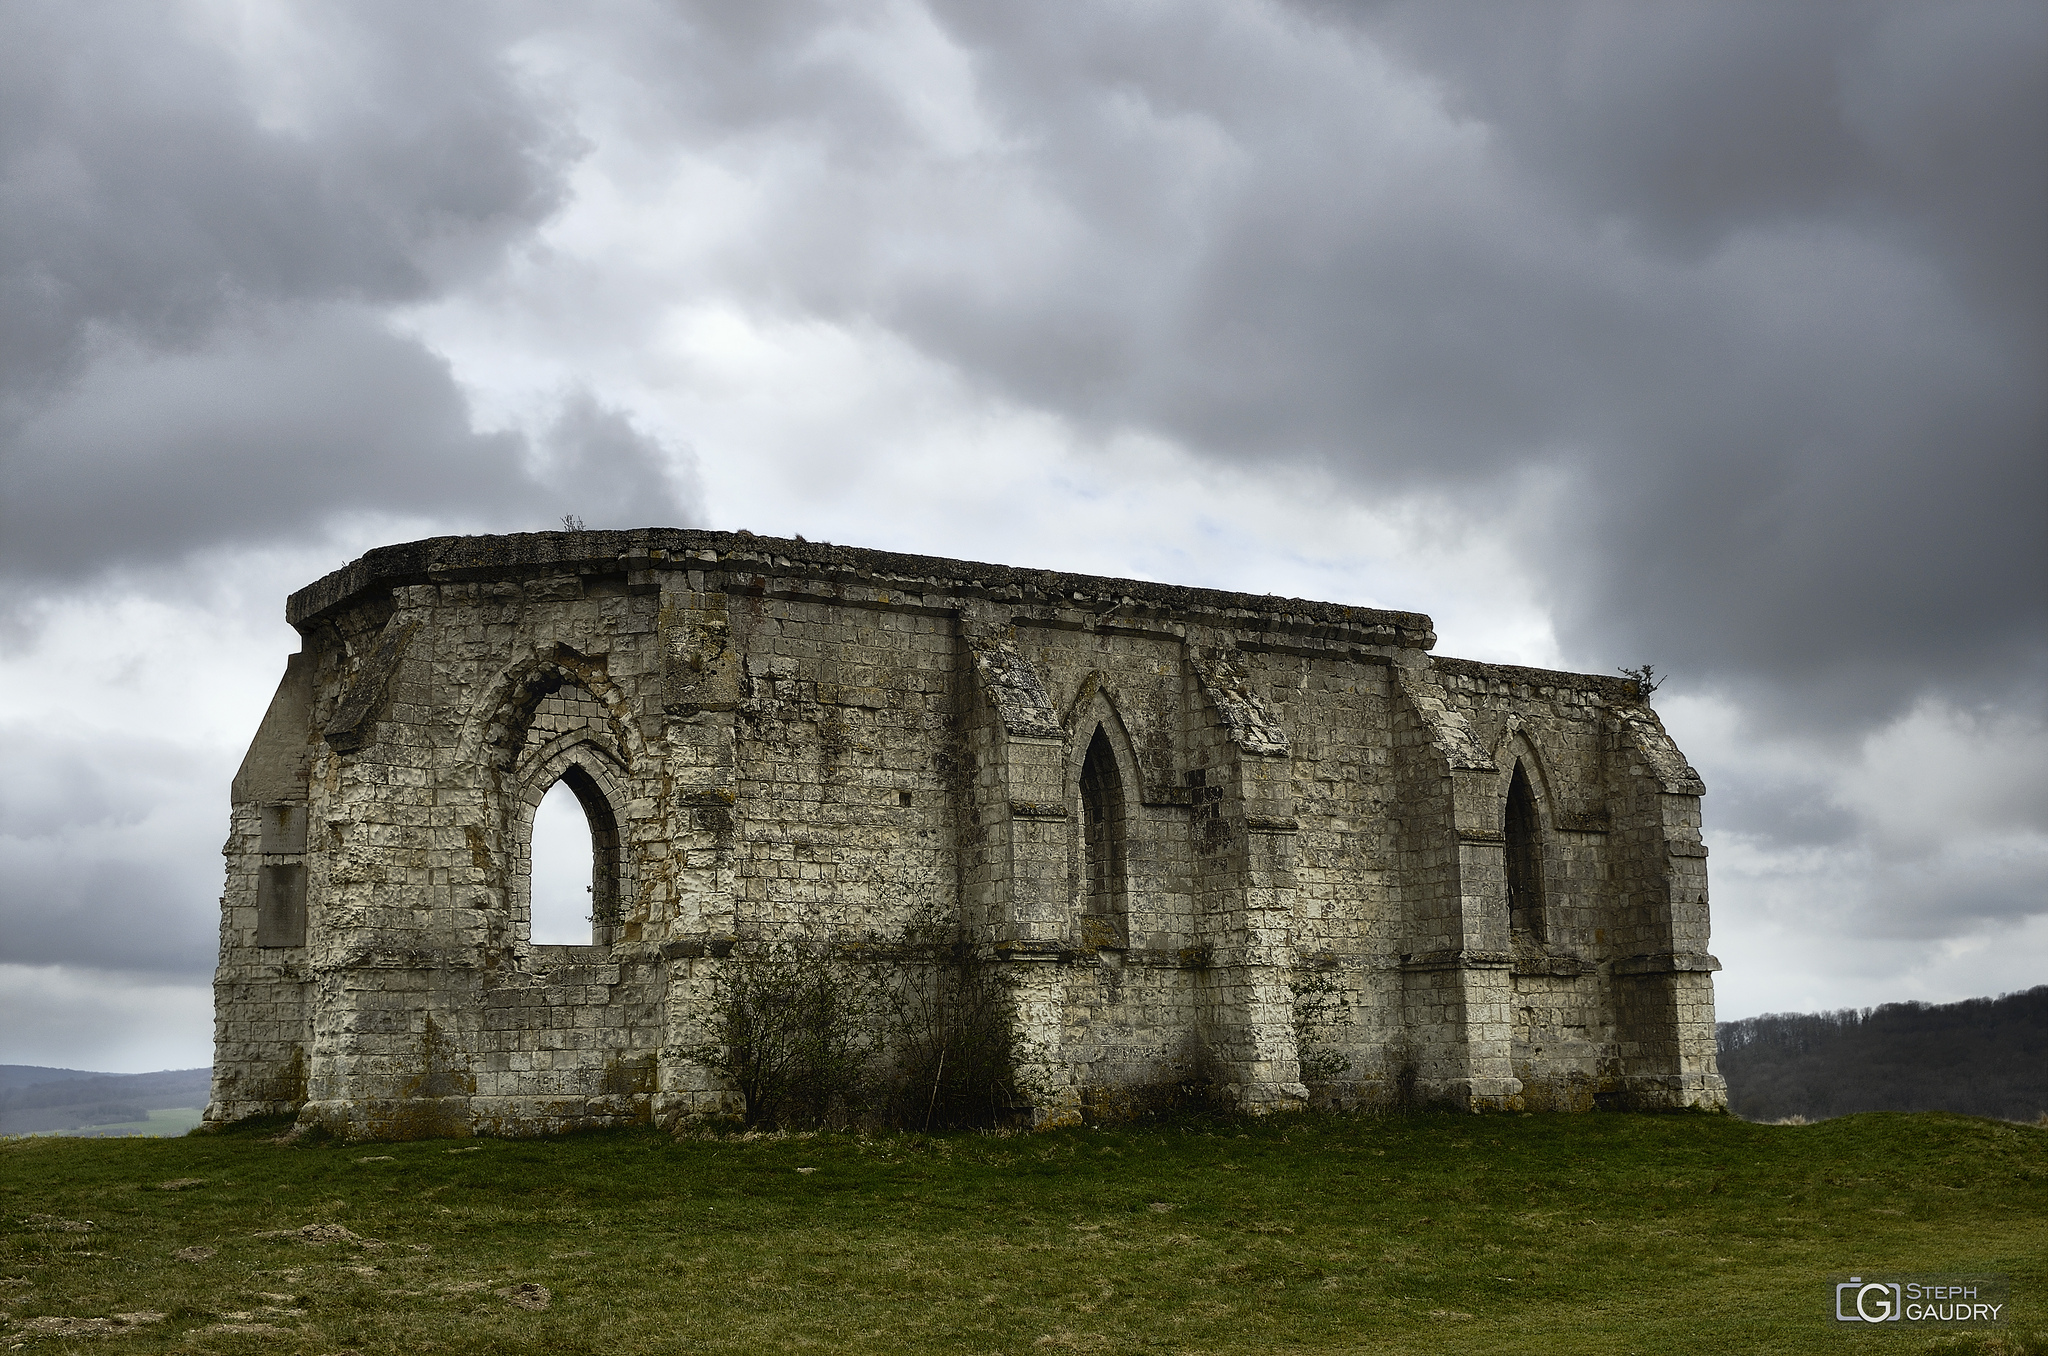 The ruins of the 13th century chapel of Saint Louis at Guémy [Klicken Sie hier, um die Diashow zu starten]